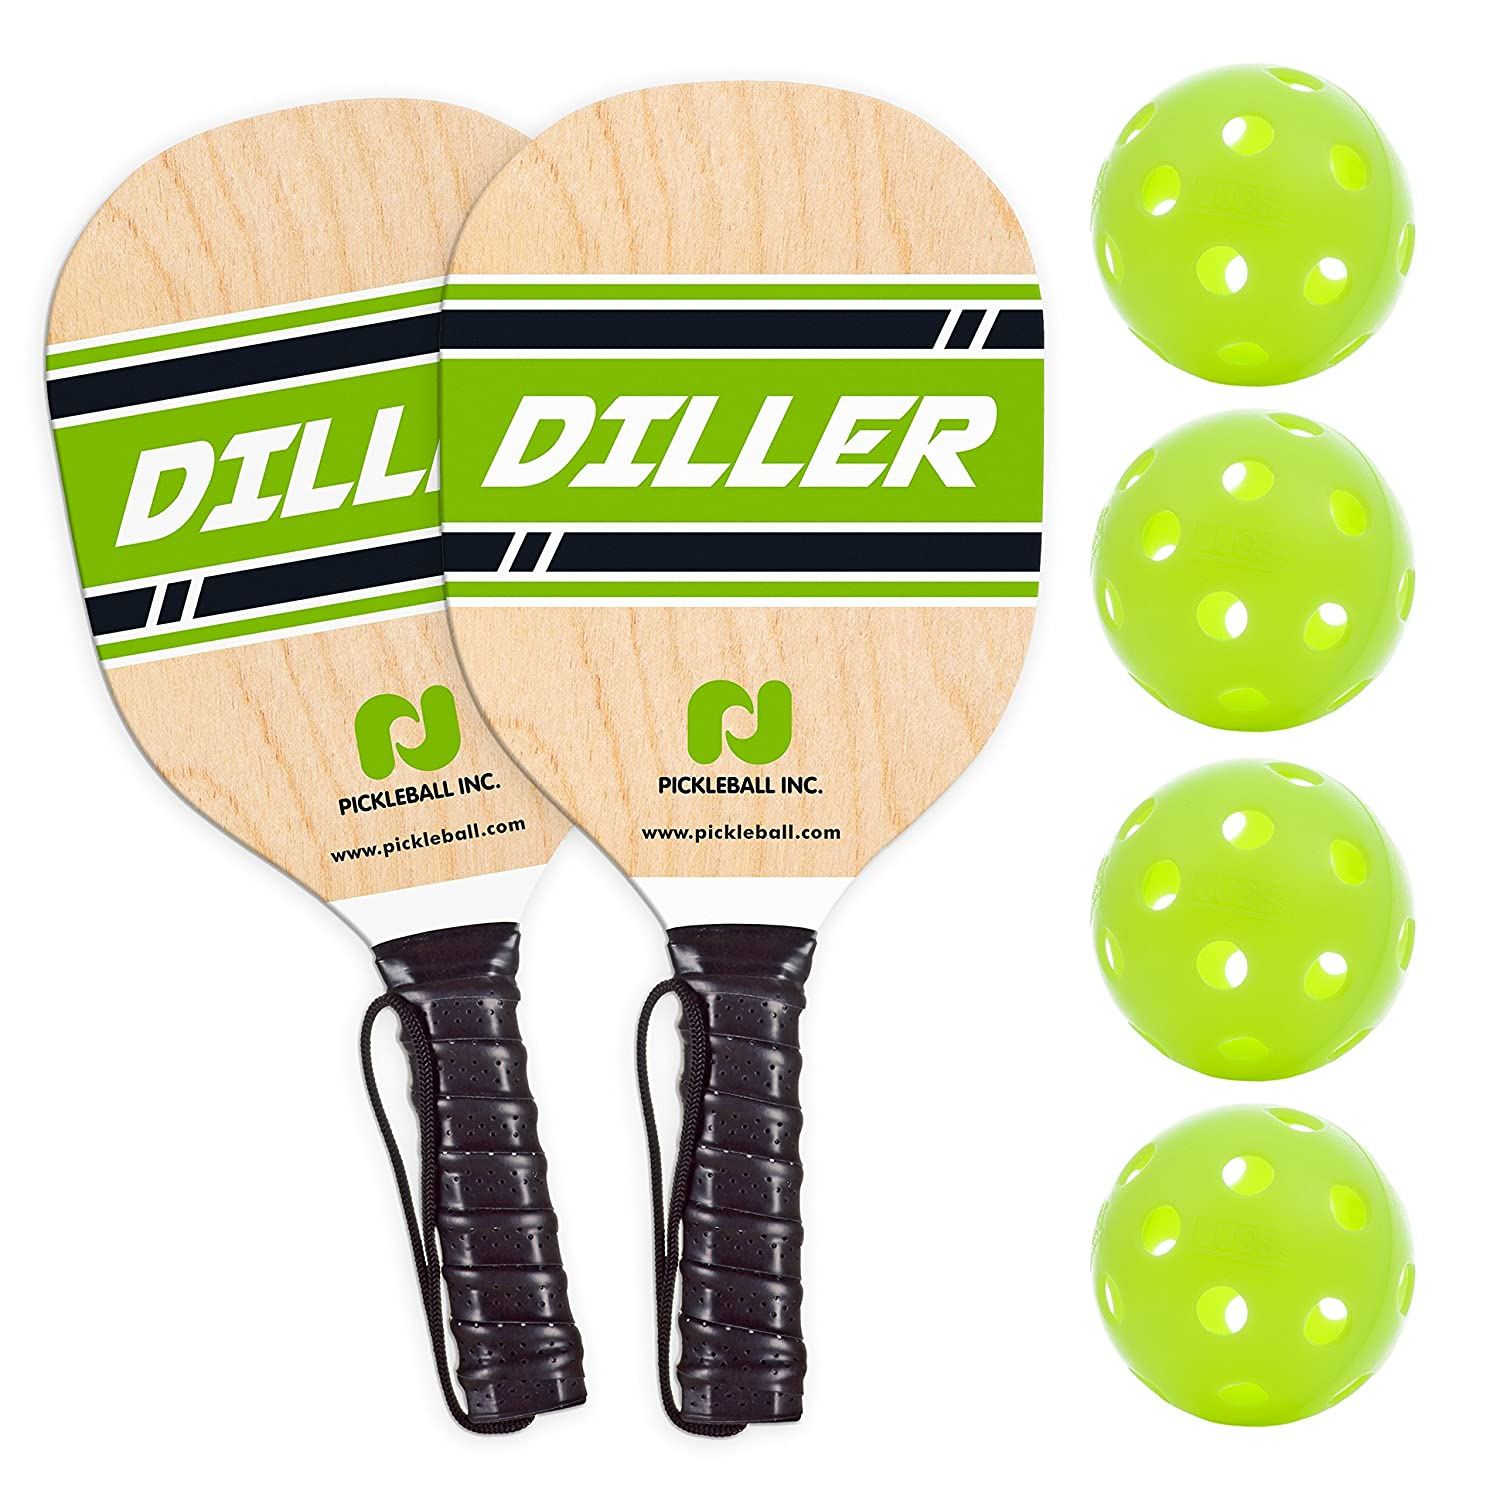 Diller Pickleball Paddle 2 Player Bundle ( Set Includes 2 Paddles & 4 Balls ) Pickle-Ball